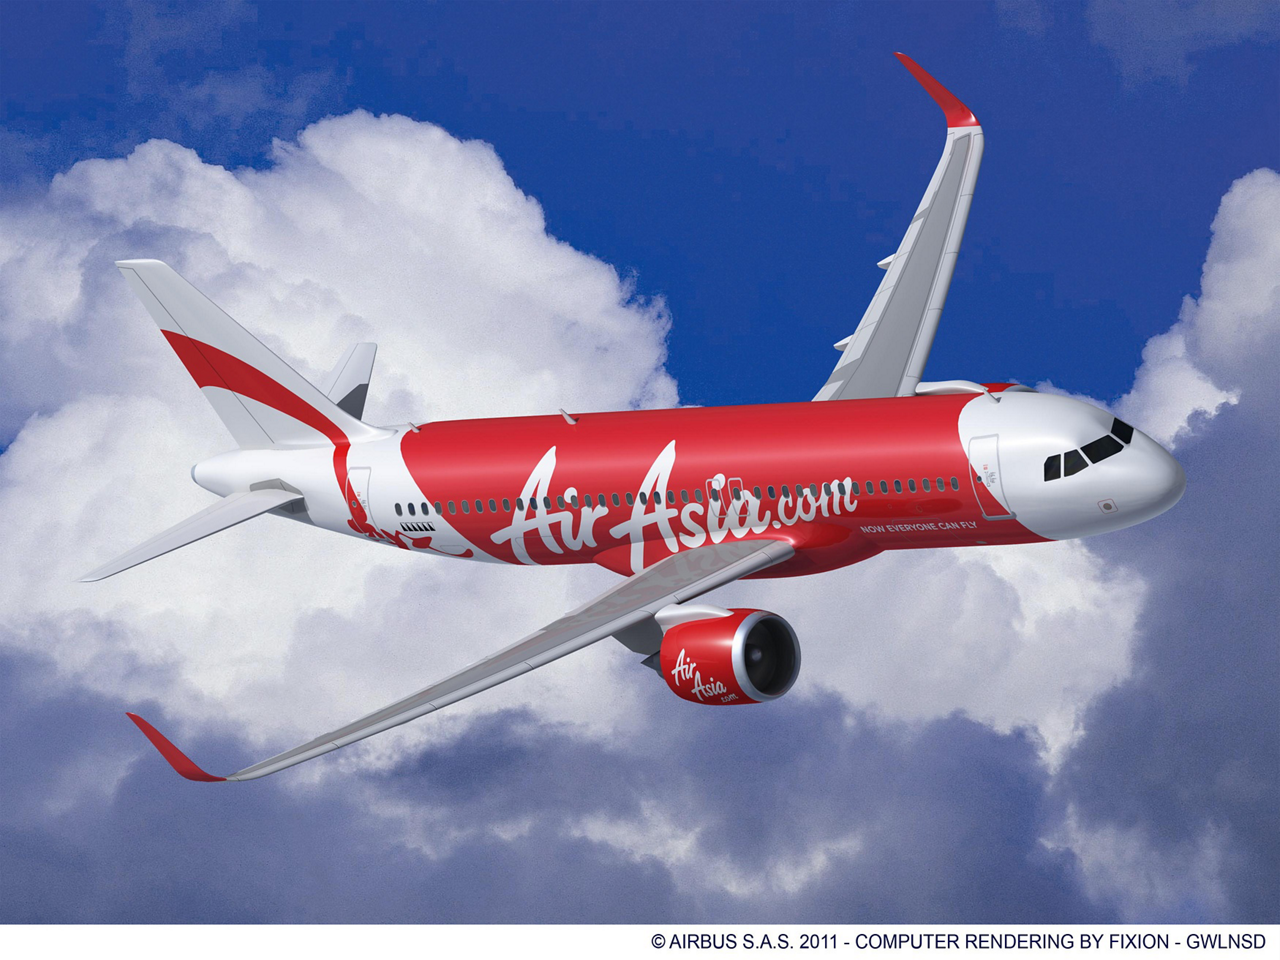 Announced at the 2011 Paris Air Show, AirAsia has placed a firm order for 200 A320neo aircraft – making it the largest airline customer for Airbus' single-aisle product line worldwide (23 June 2011)